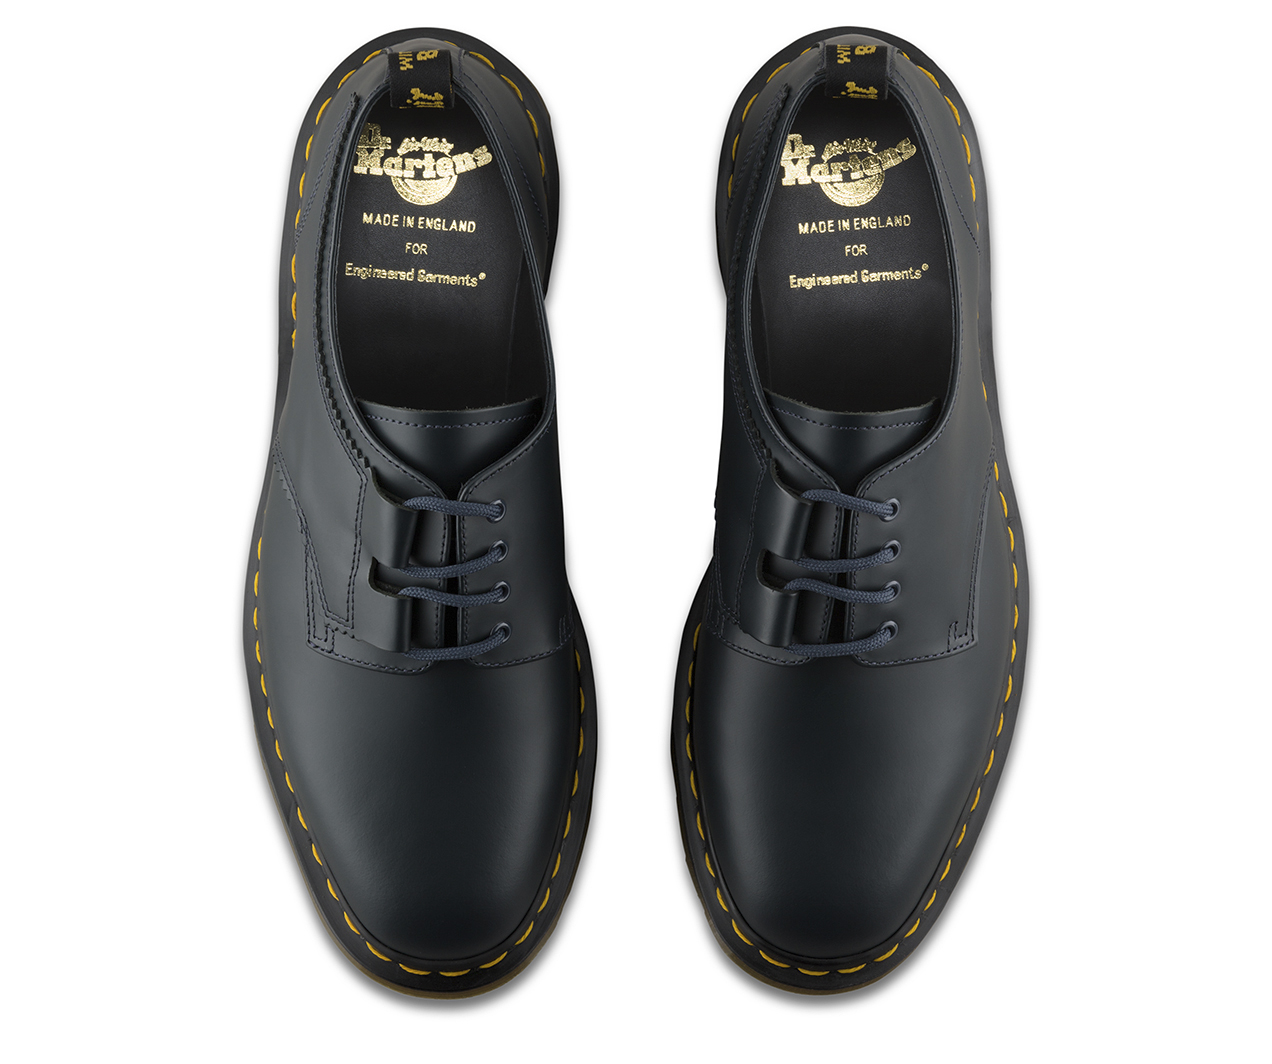 clearance very cheap Engineered Garments + Dr Martens Suede Derby Shoes cheap sale best 2DKGxBN